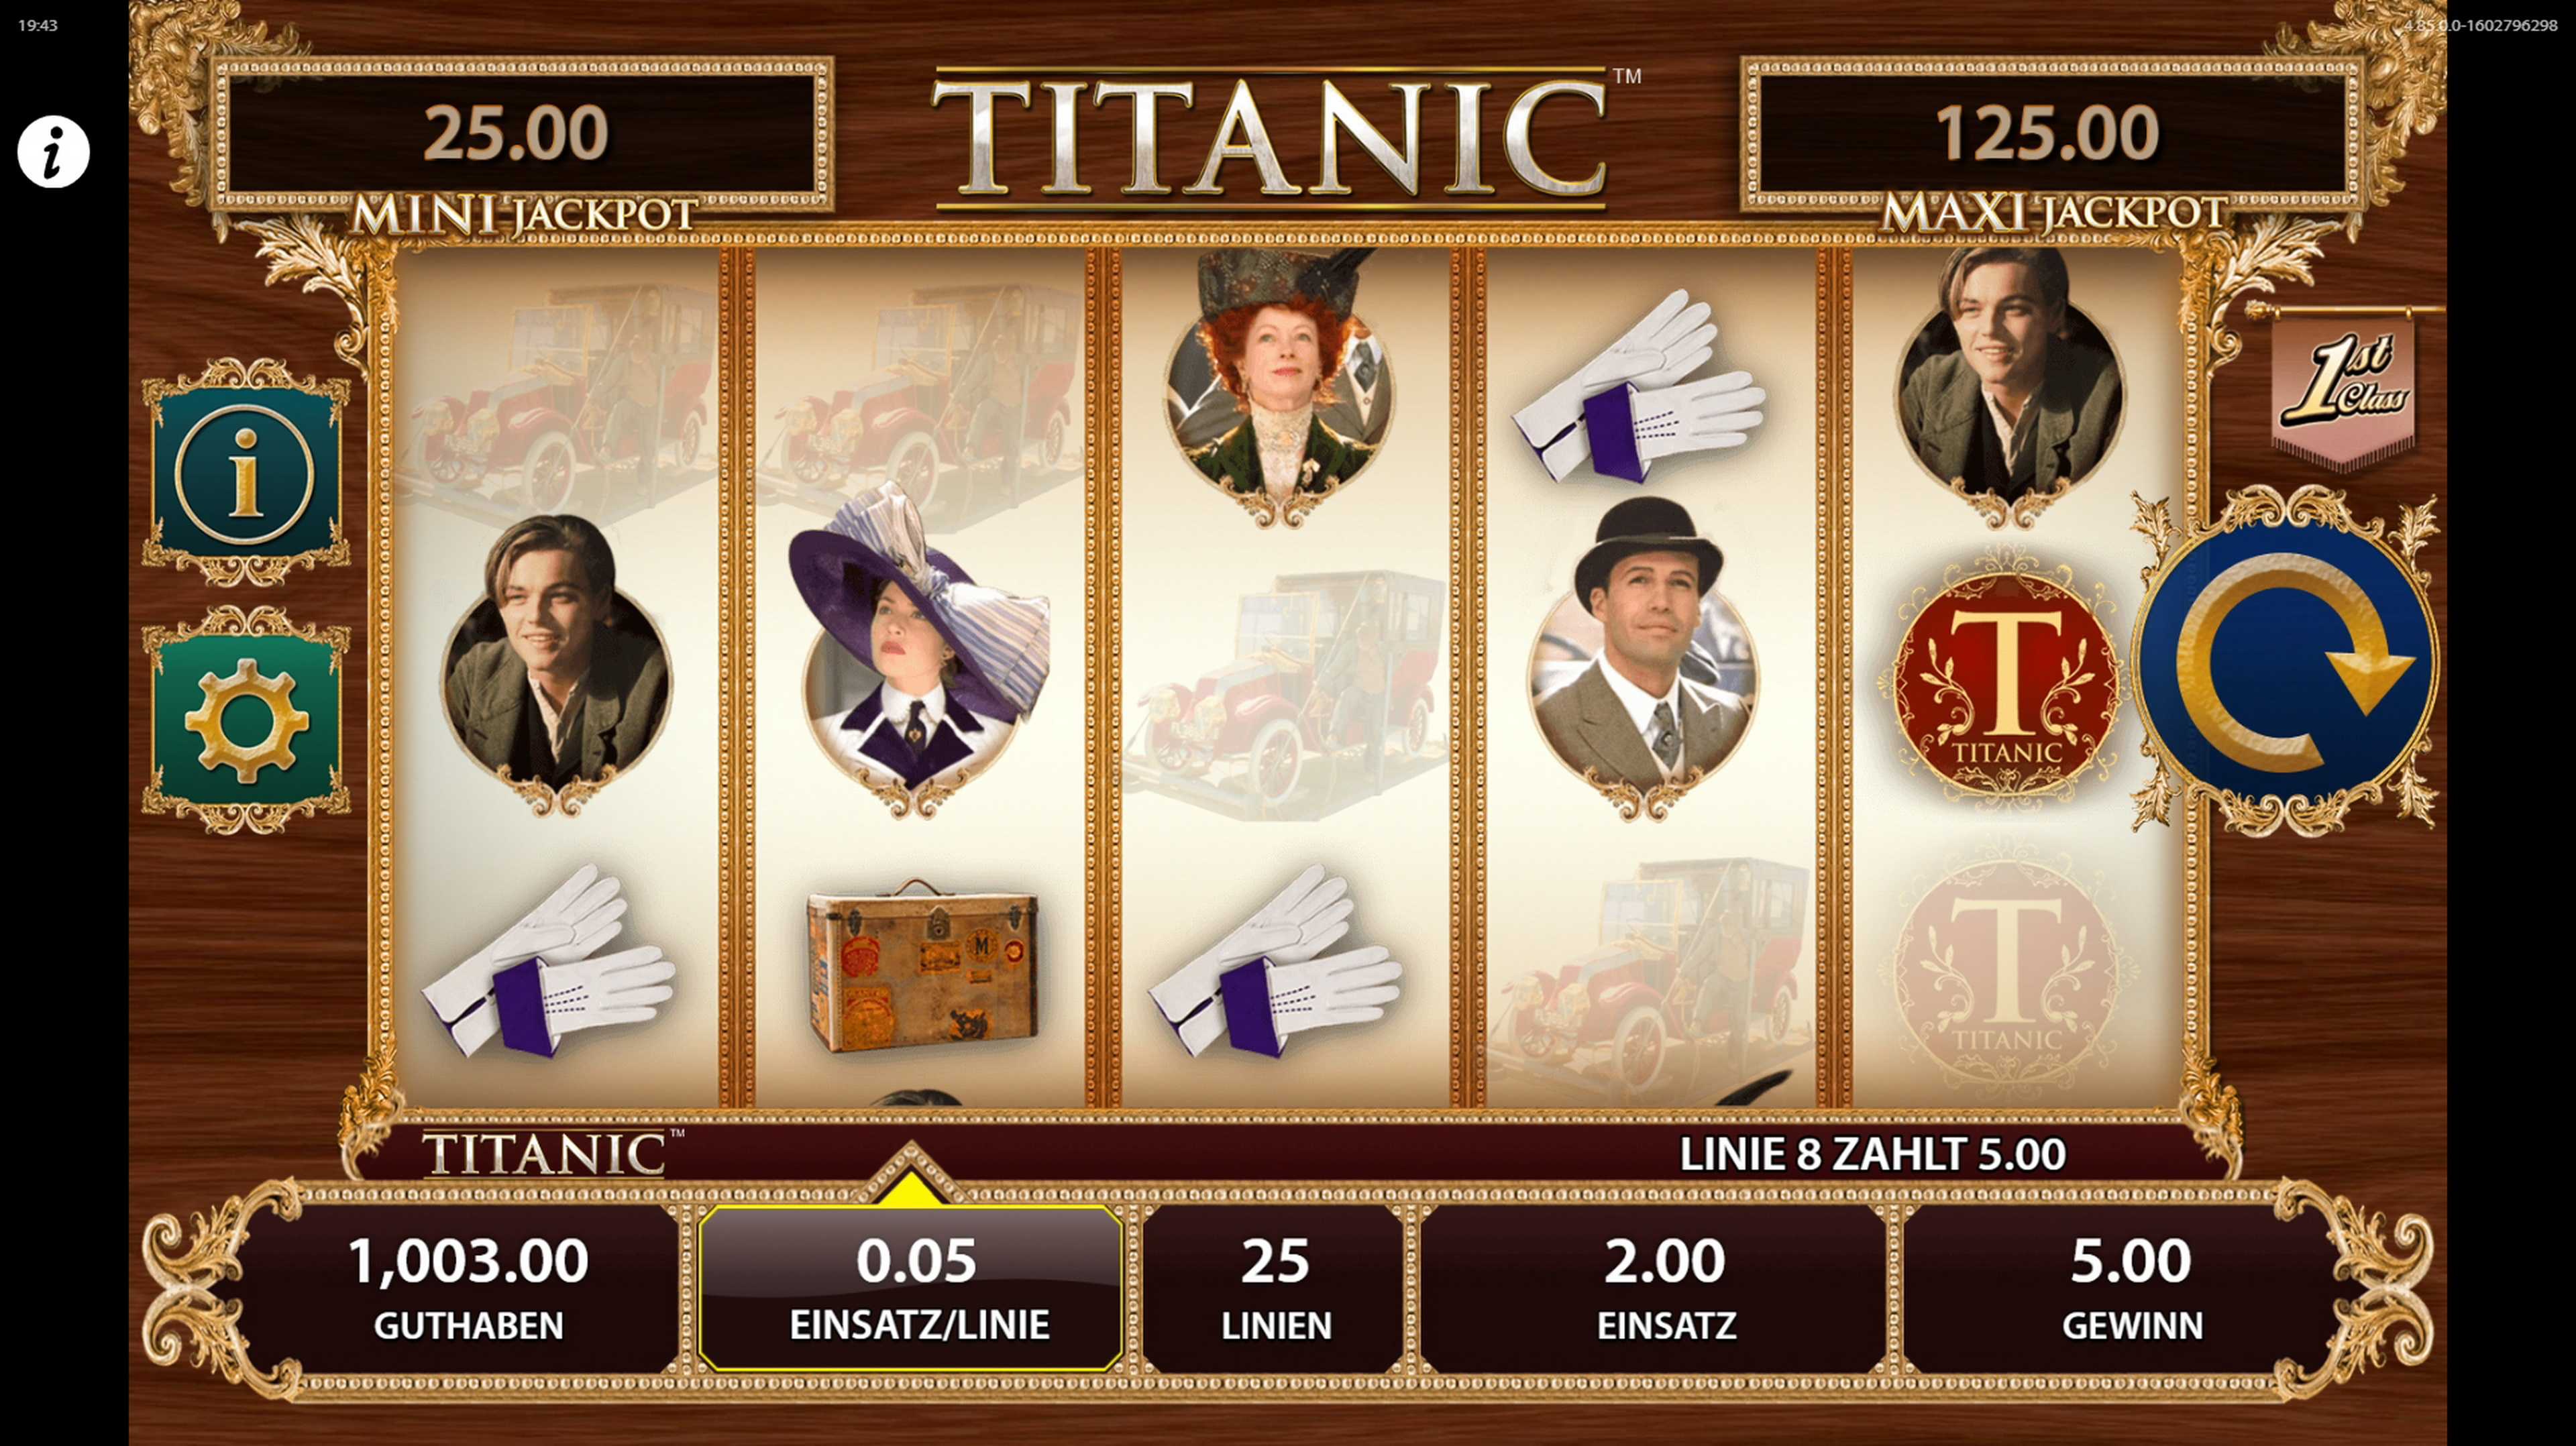 Win Money in TITANIC Free Slot Game by Bally